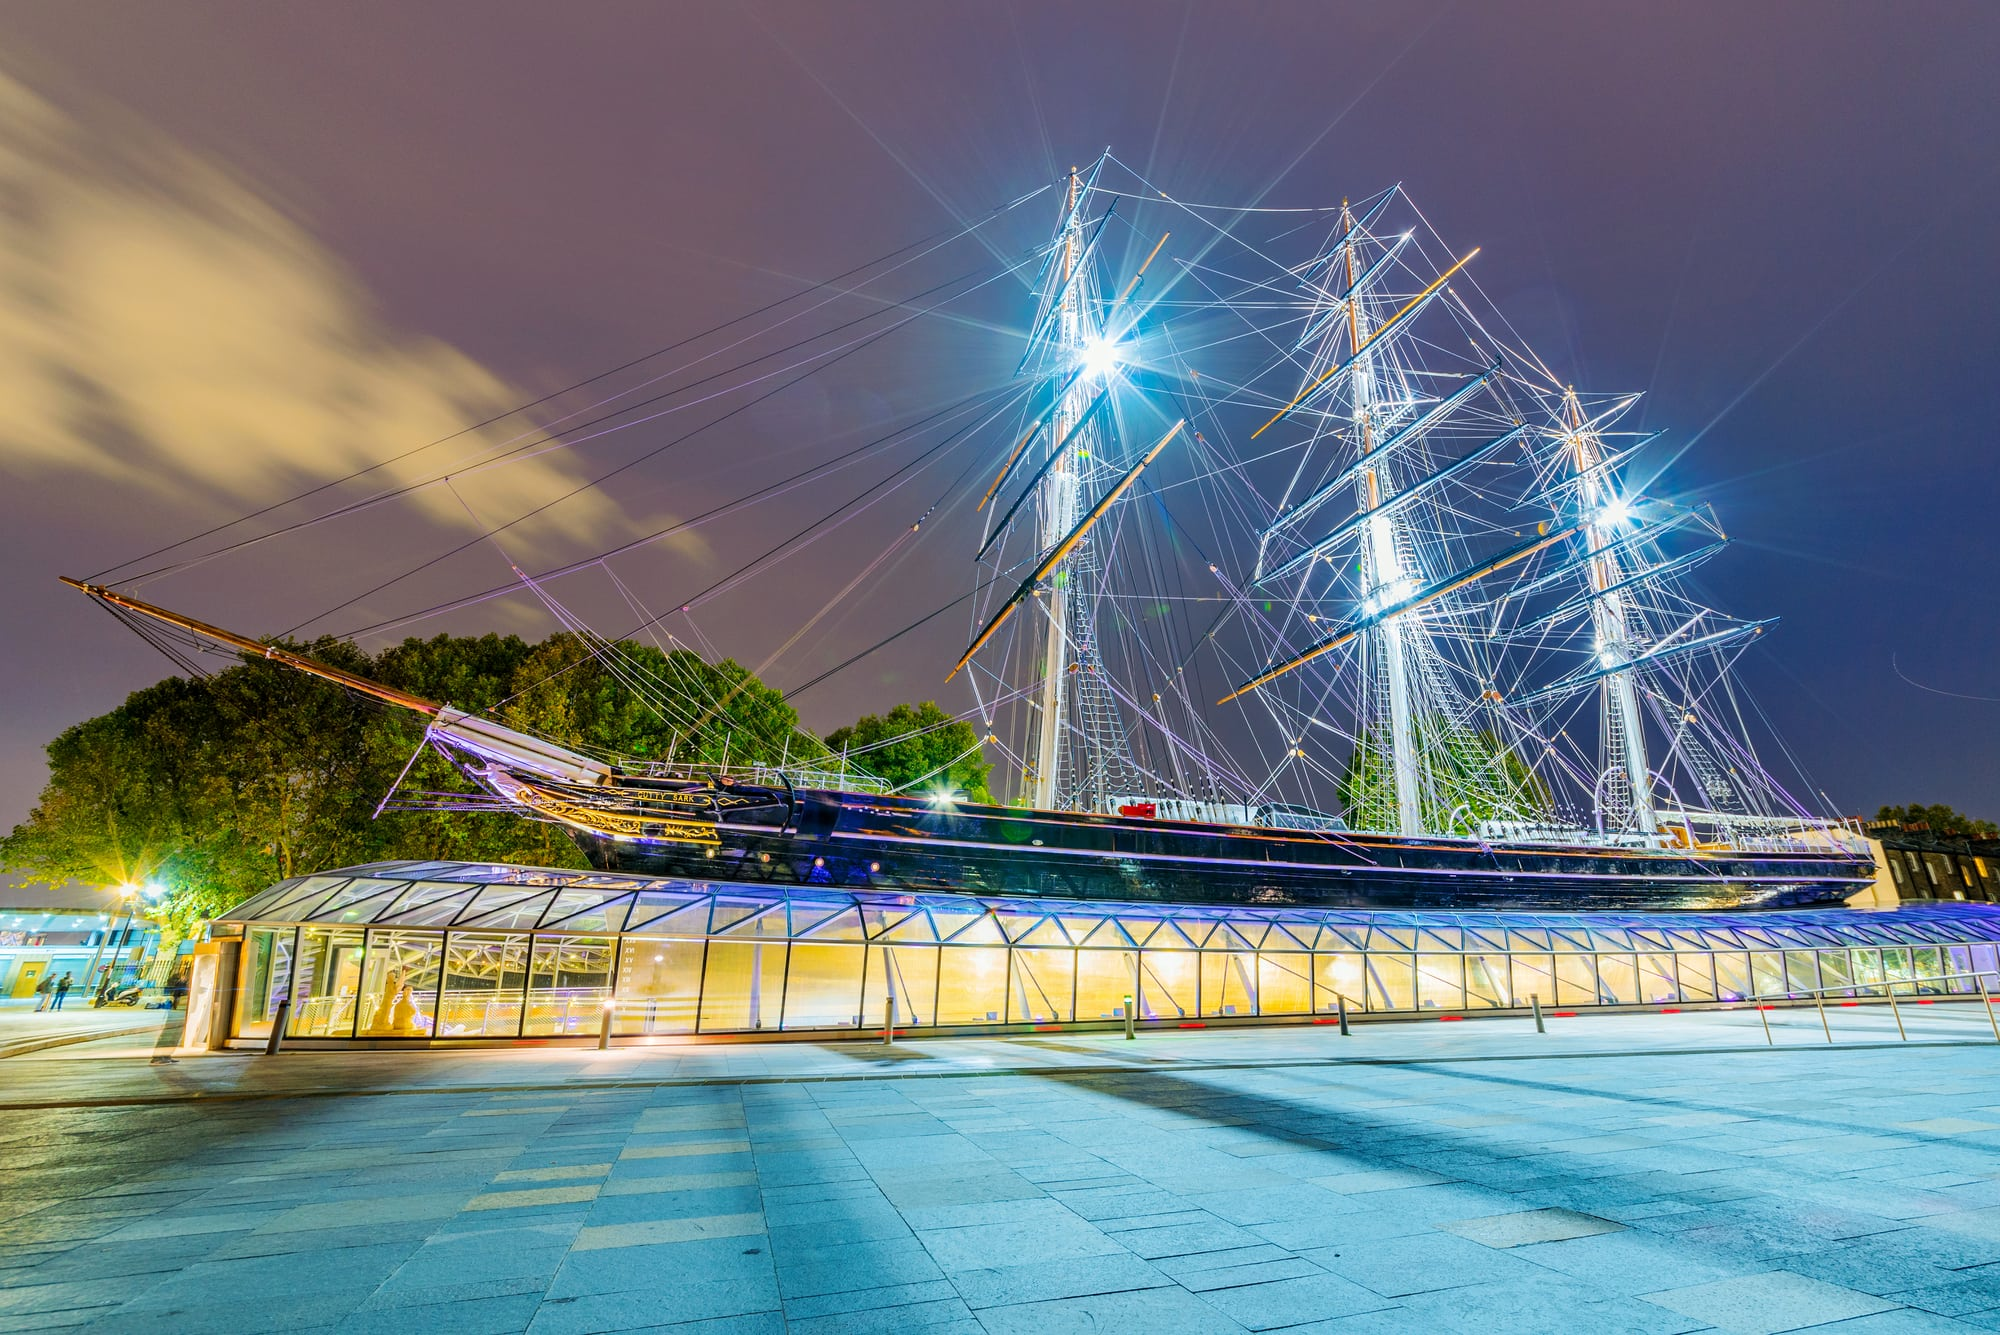 LONDON, UNITED KINGDOM - OCTOBER 07: This is a night view of the Cutty Sark ship a historic ship which is a landmark in Greenwich on October 07, 2017 in London